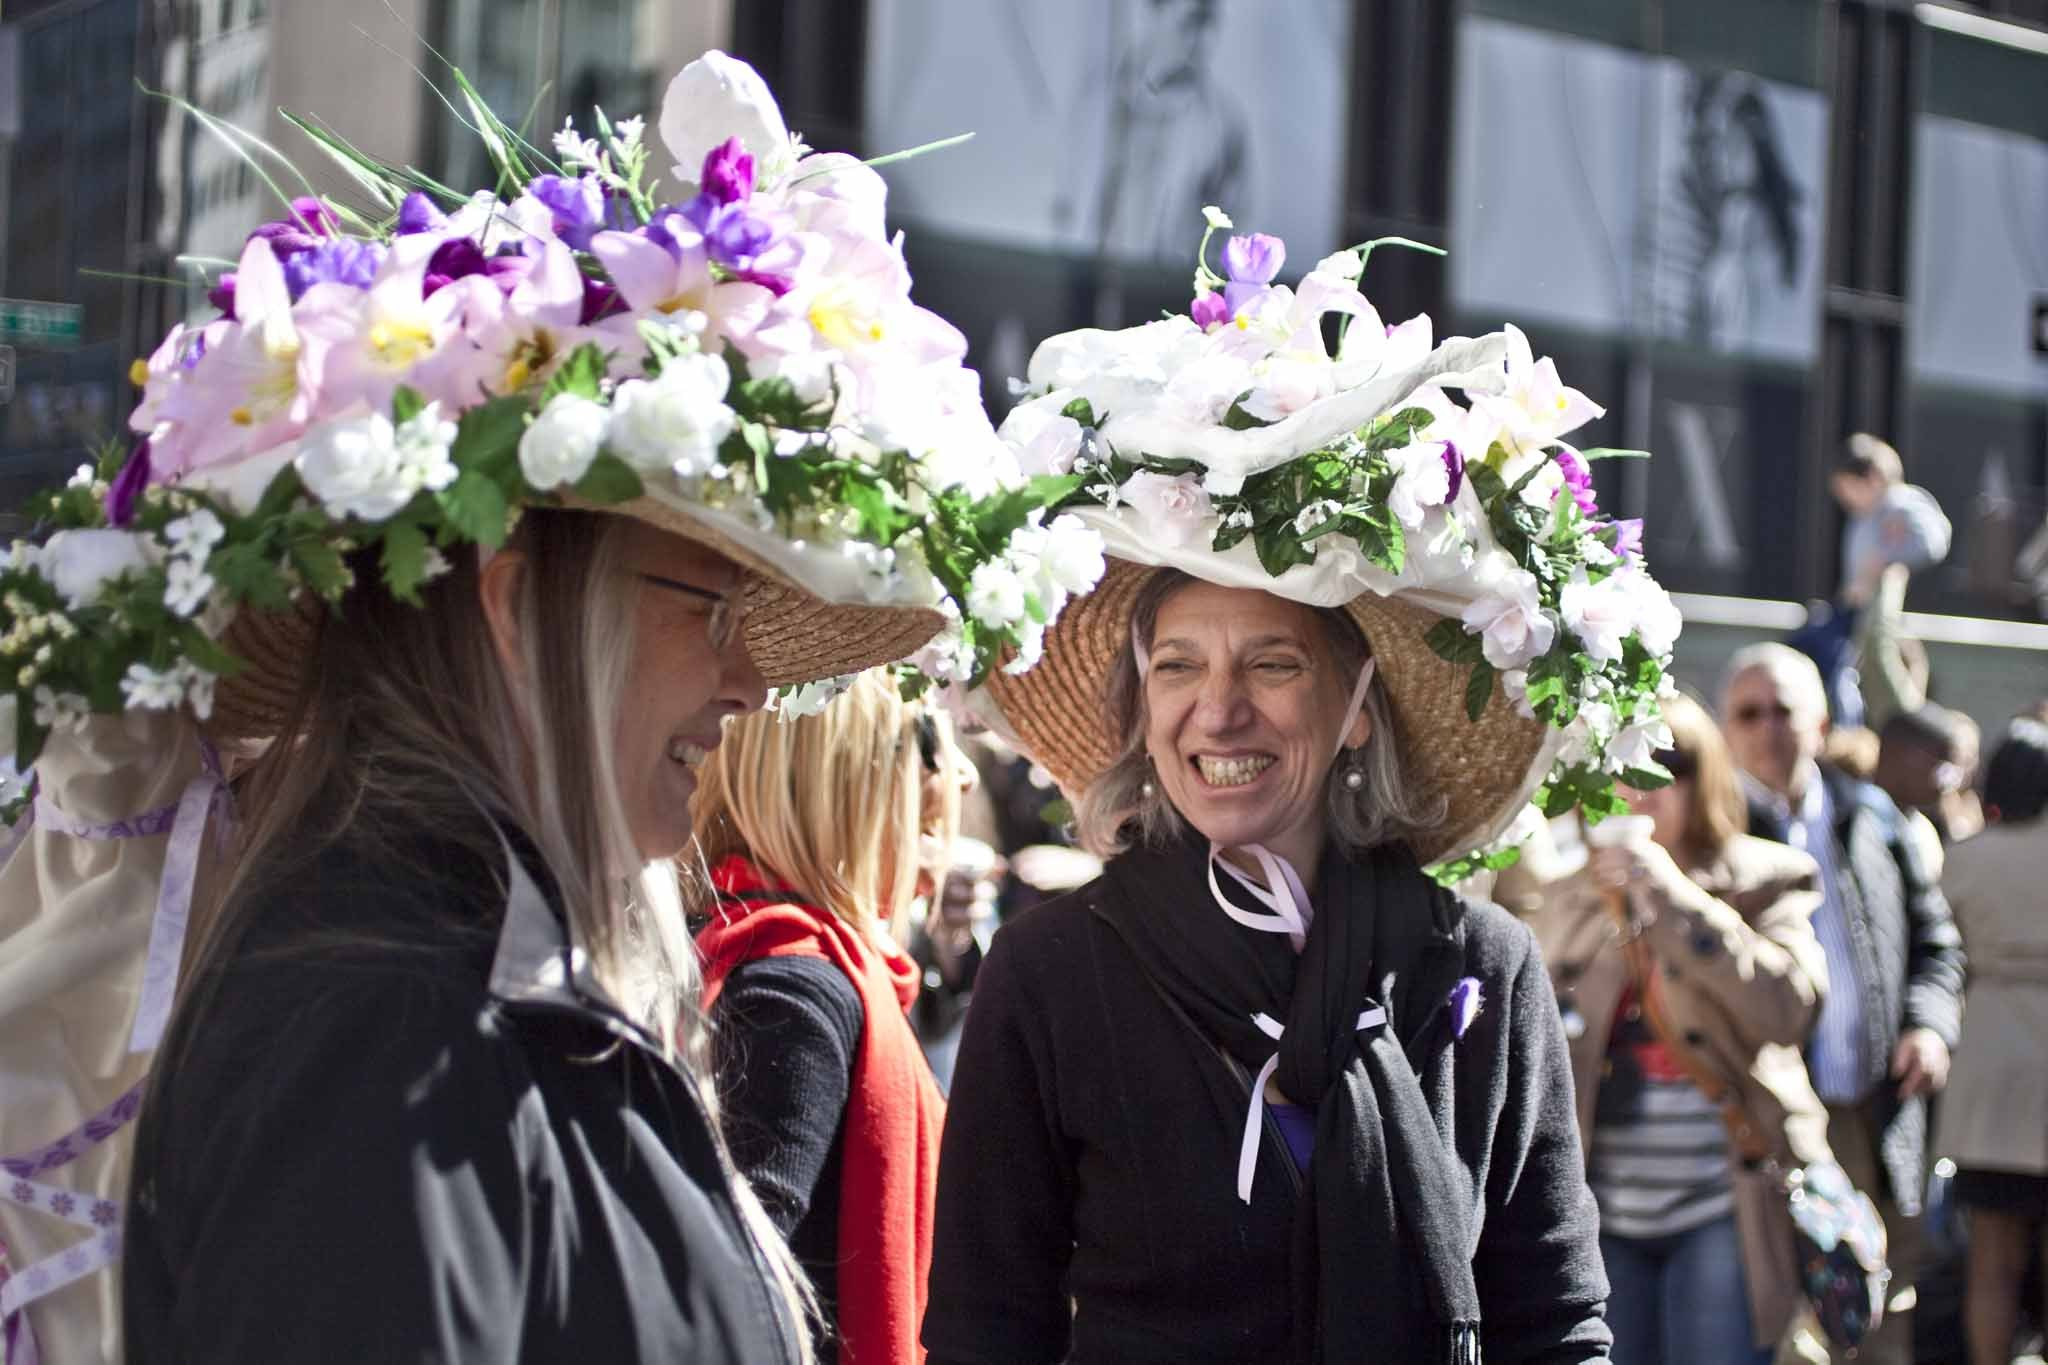 Photos: Easter Parade and Bonnet Festival (2012)